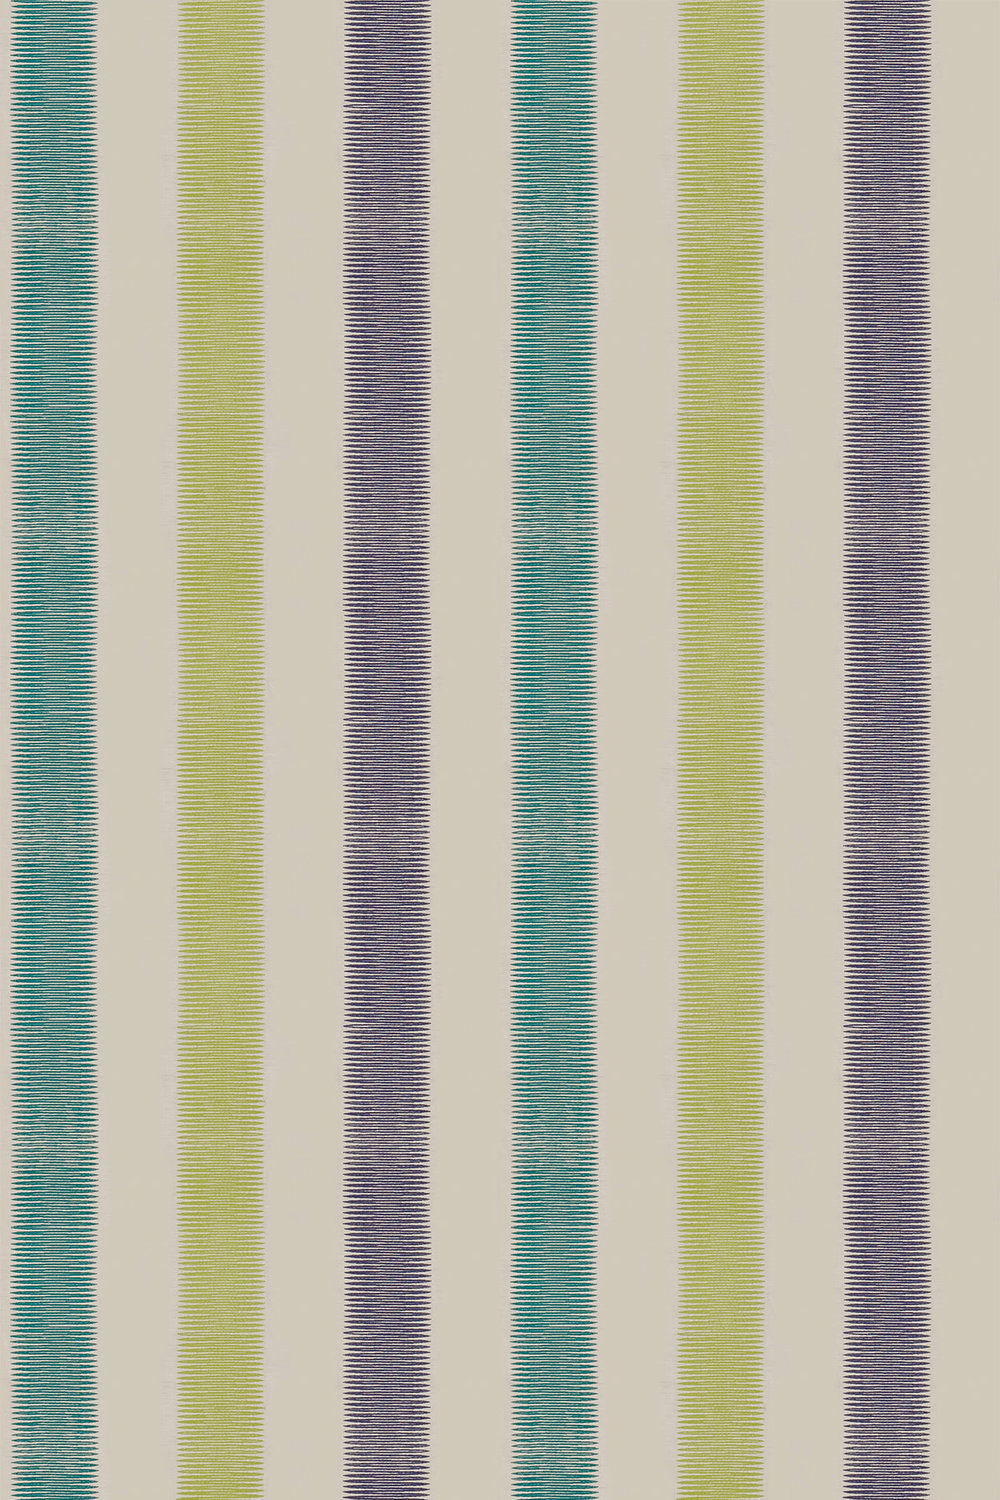 Tambo Fabric - Zest/Indigo/Emerald - by Harlequin